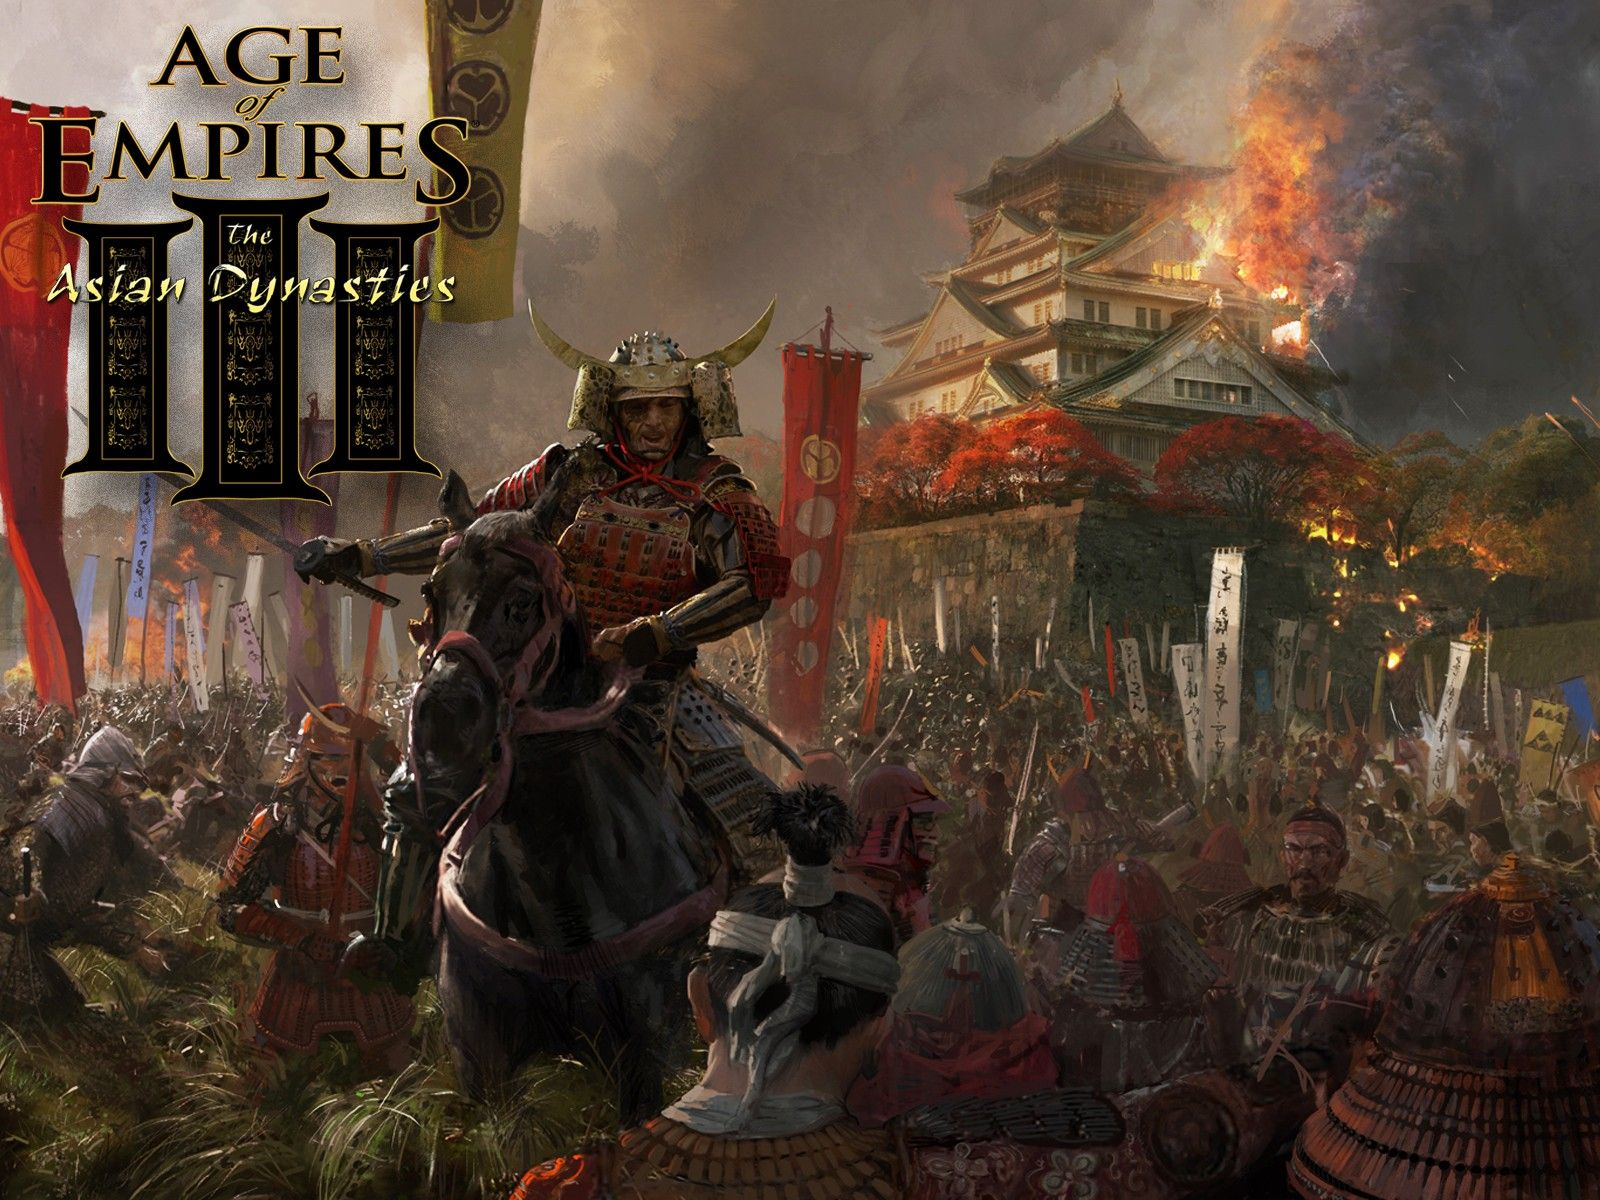 Japan Jpg 1600 1200 Age Of Empires War Art Age Of Empires Iii